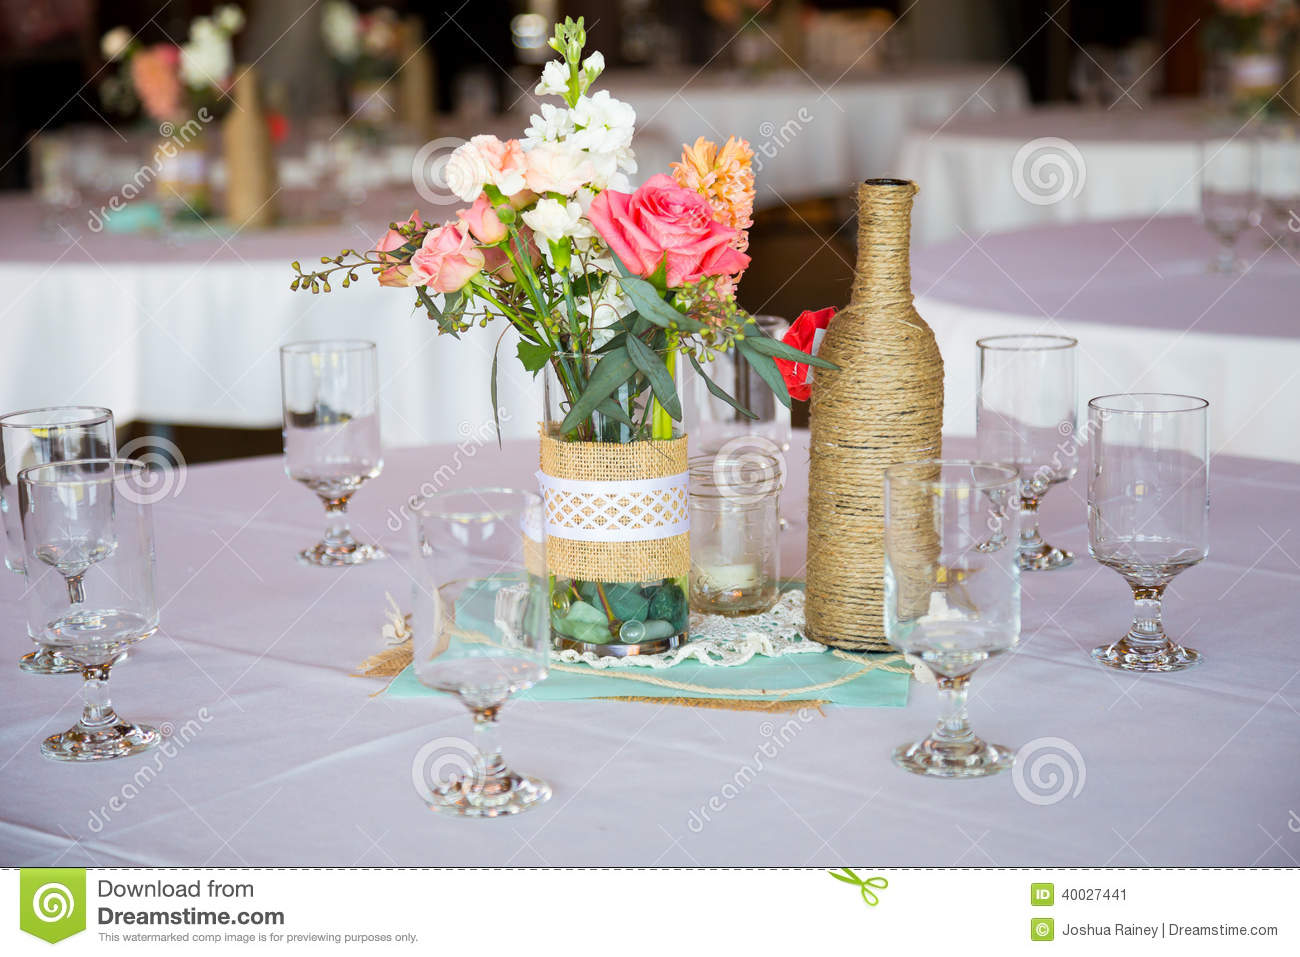 Wedding Reception Table Centerpieces Stock Image Image Of Decor